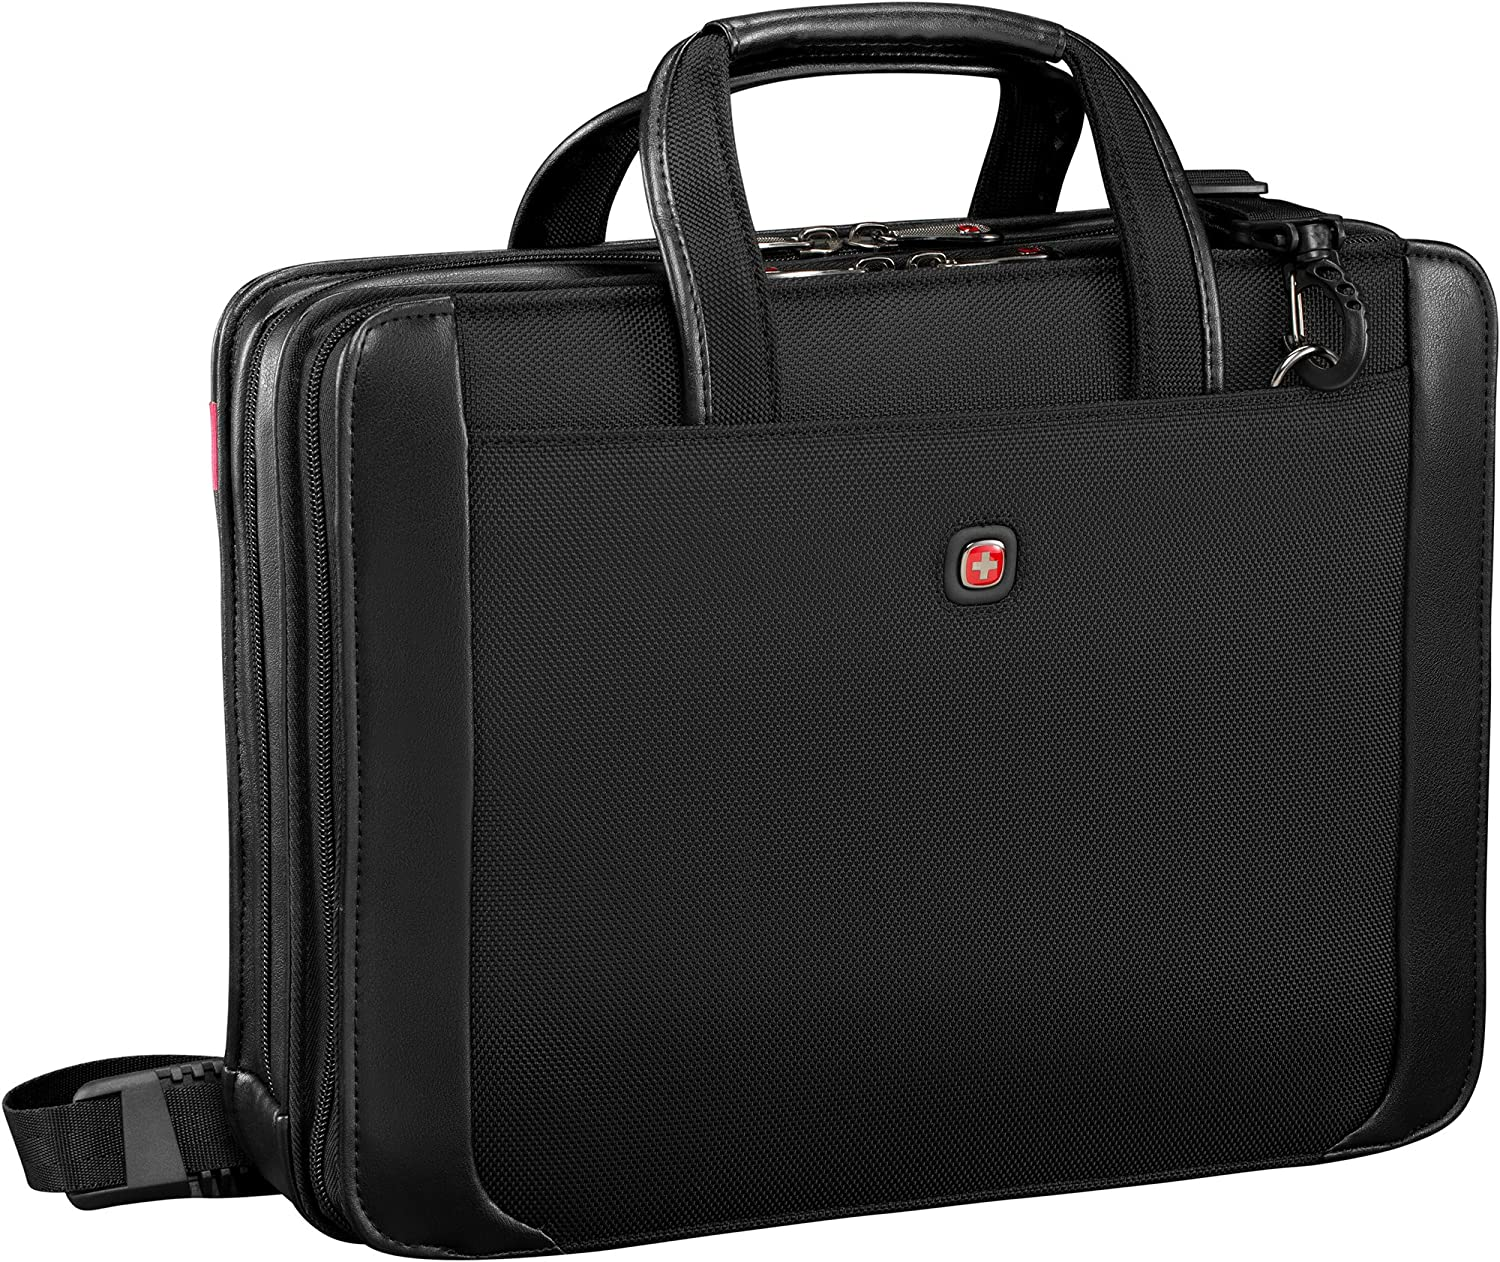 Wenger Luggage Proxy Zippered Laptop Presentation Padfolio, Black, 14-inch